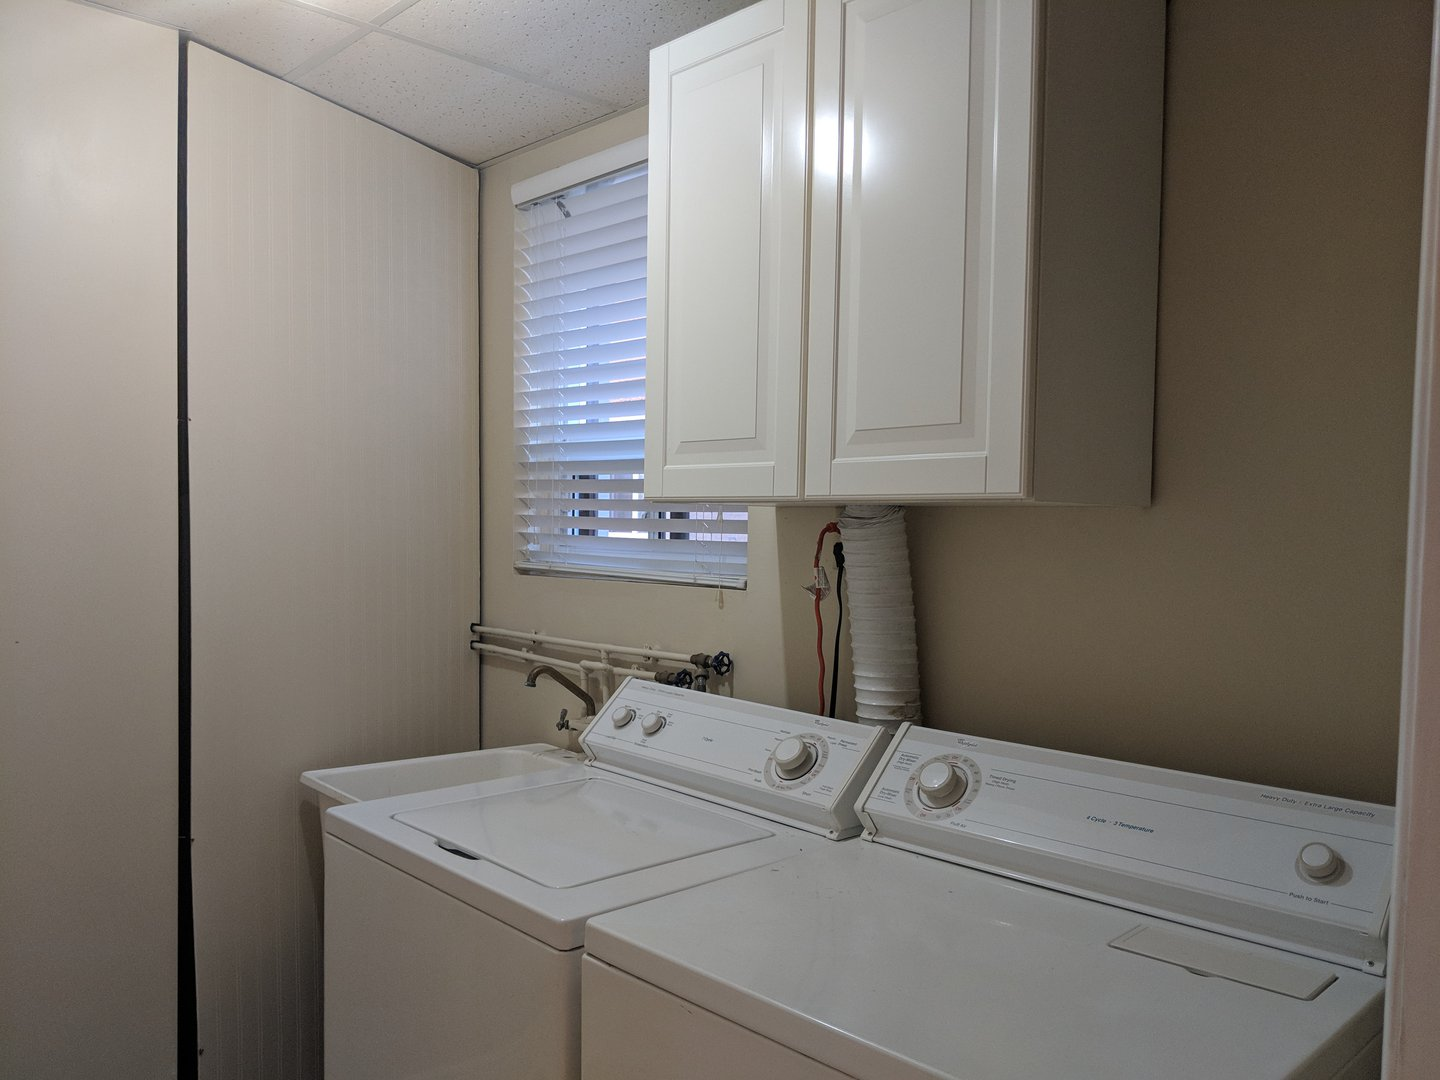 House for rent at 1162 Kipling Ave | Unit: upper, Etobicoke, ON. This is the laundry room with natural light.